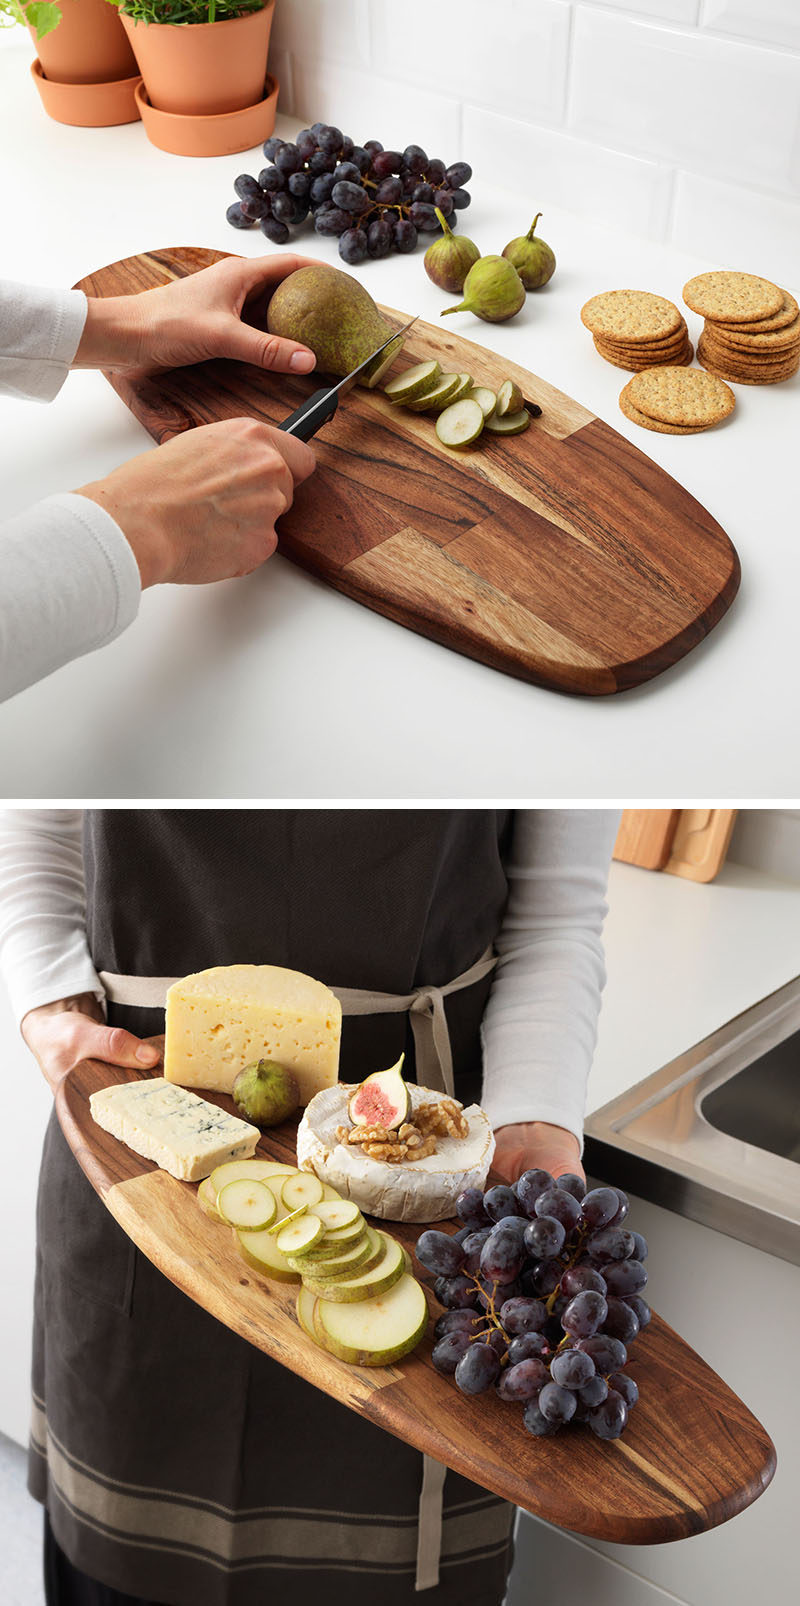 This long wood tray can be used as a cutting board, a serving tray or a decorative tray down the center of a table or styled on a coffee table.